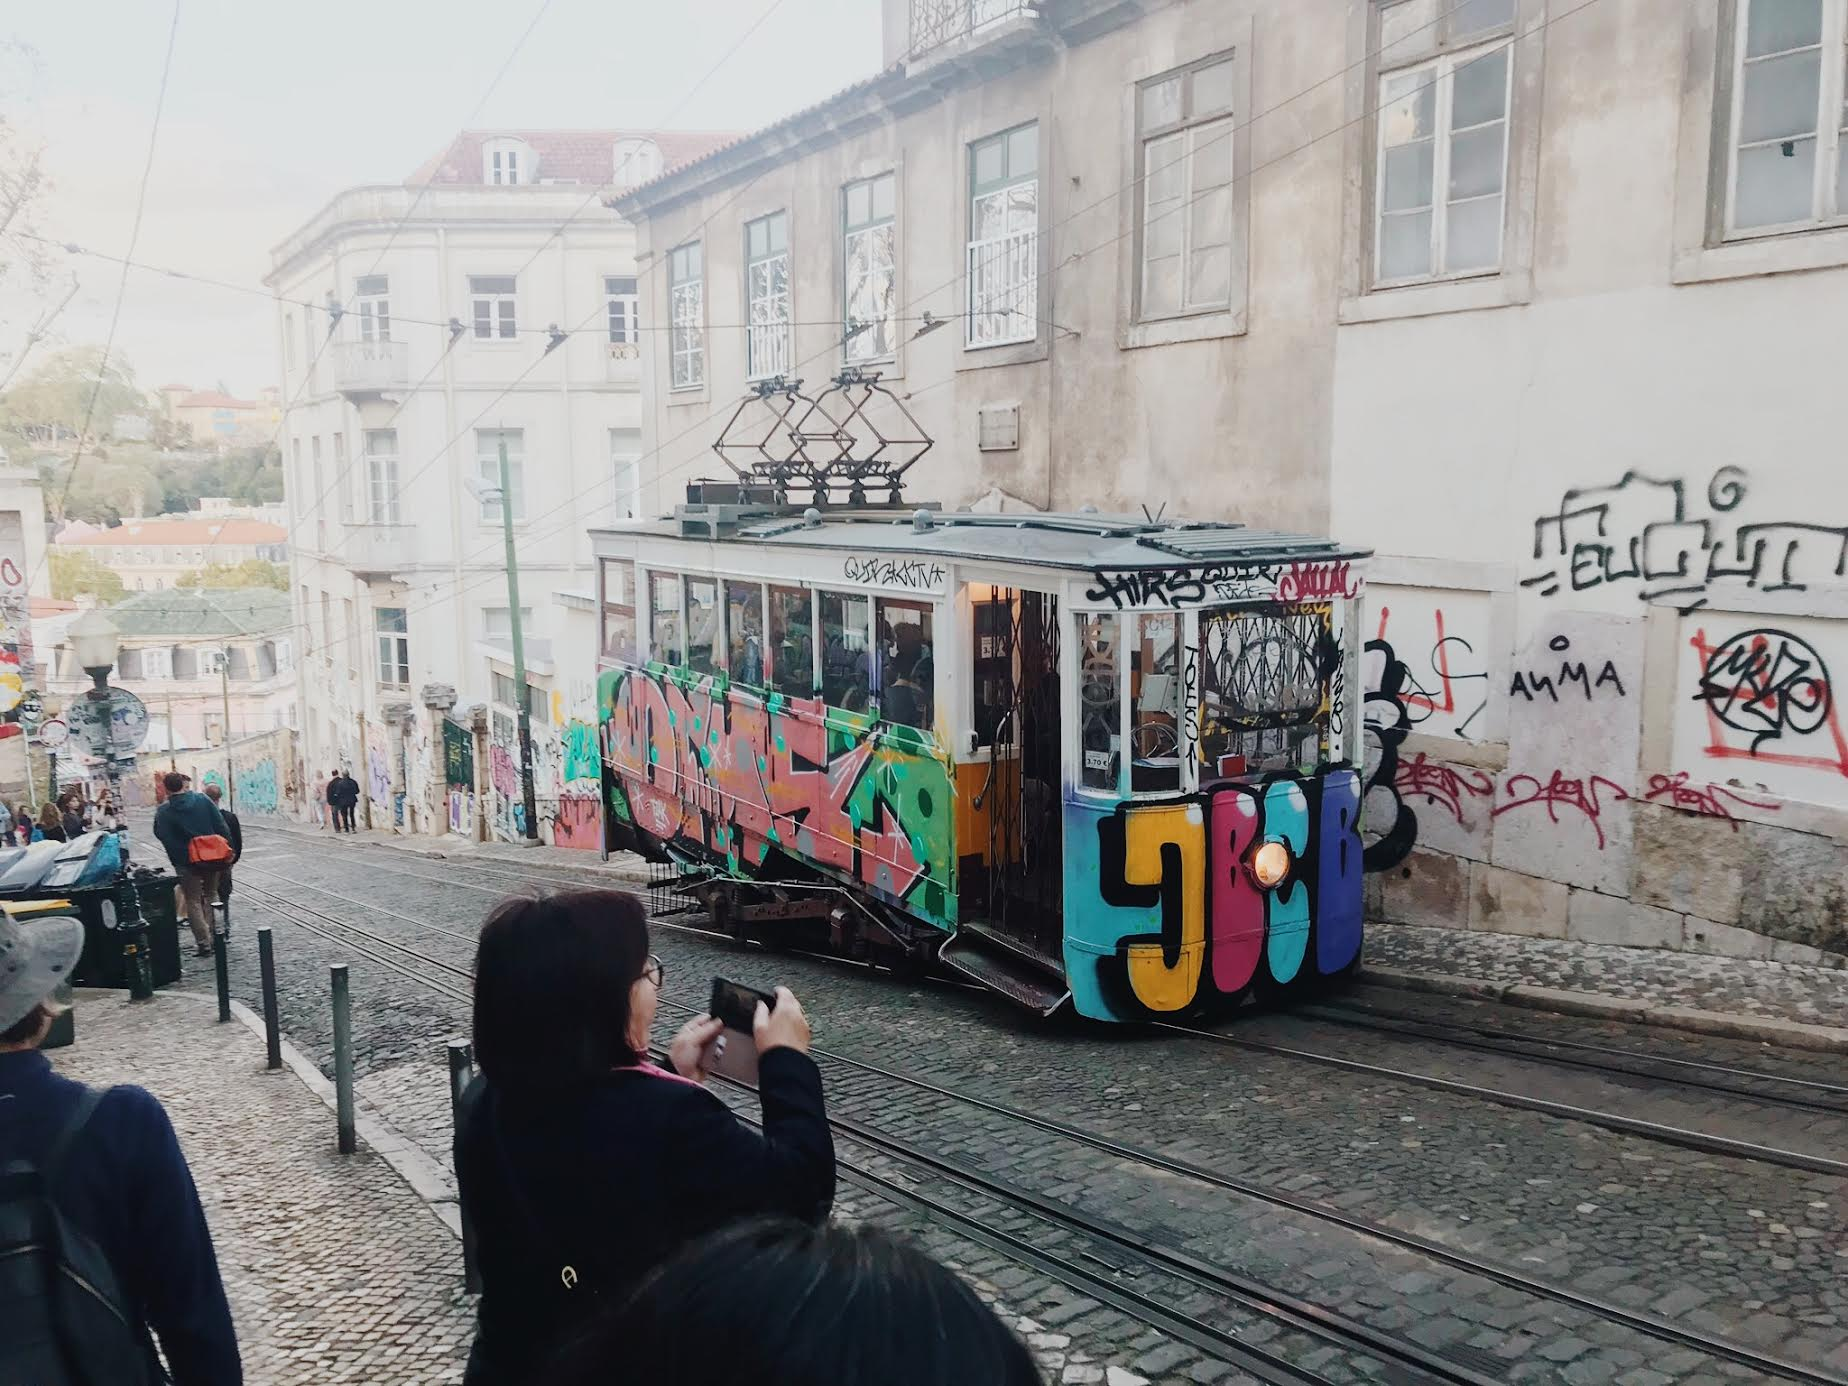 Muslim-travel-guide-Lisbon-travel-tips-tram